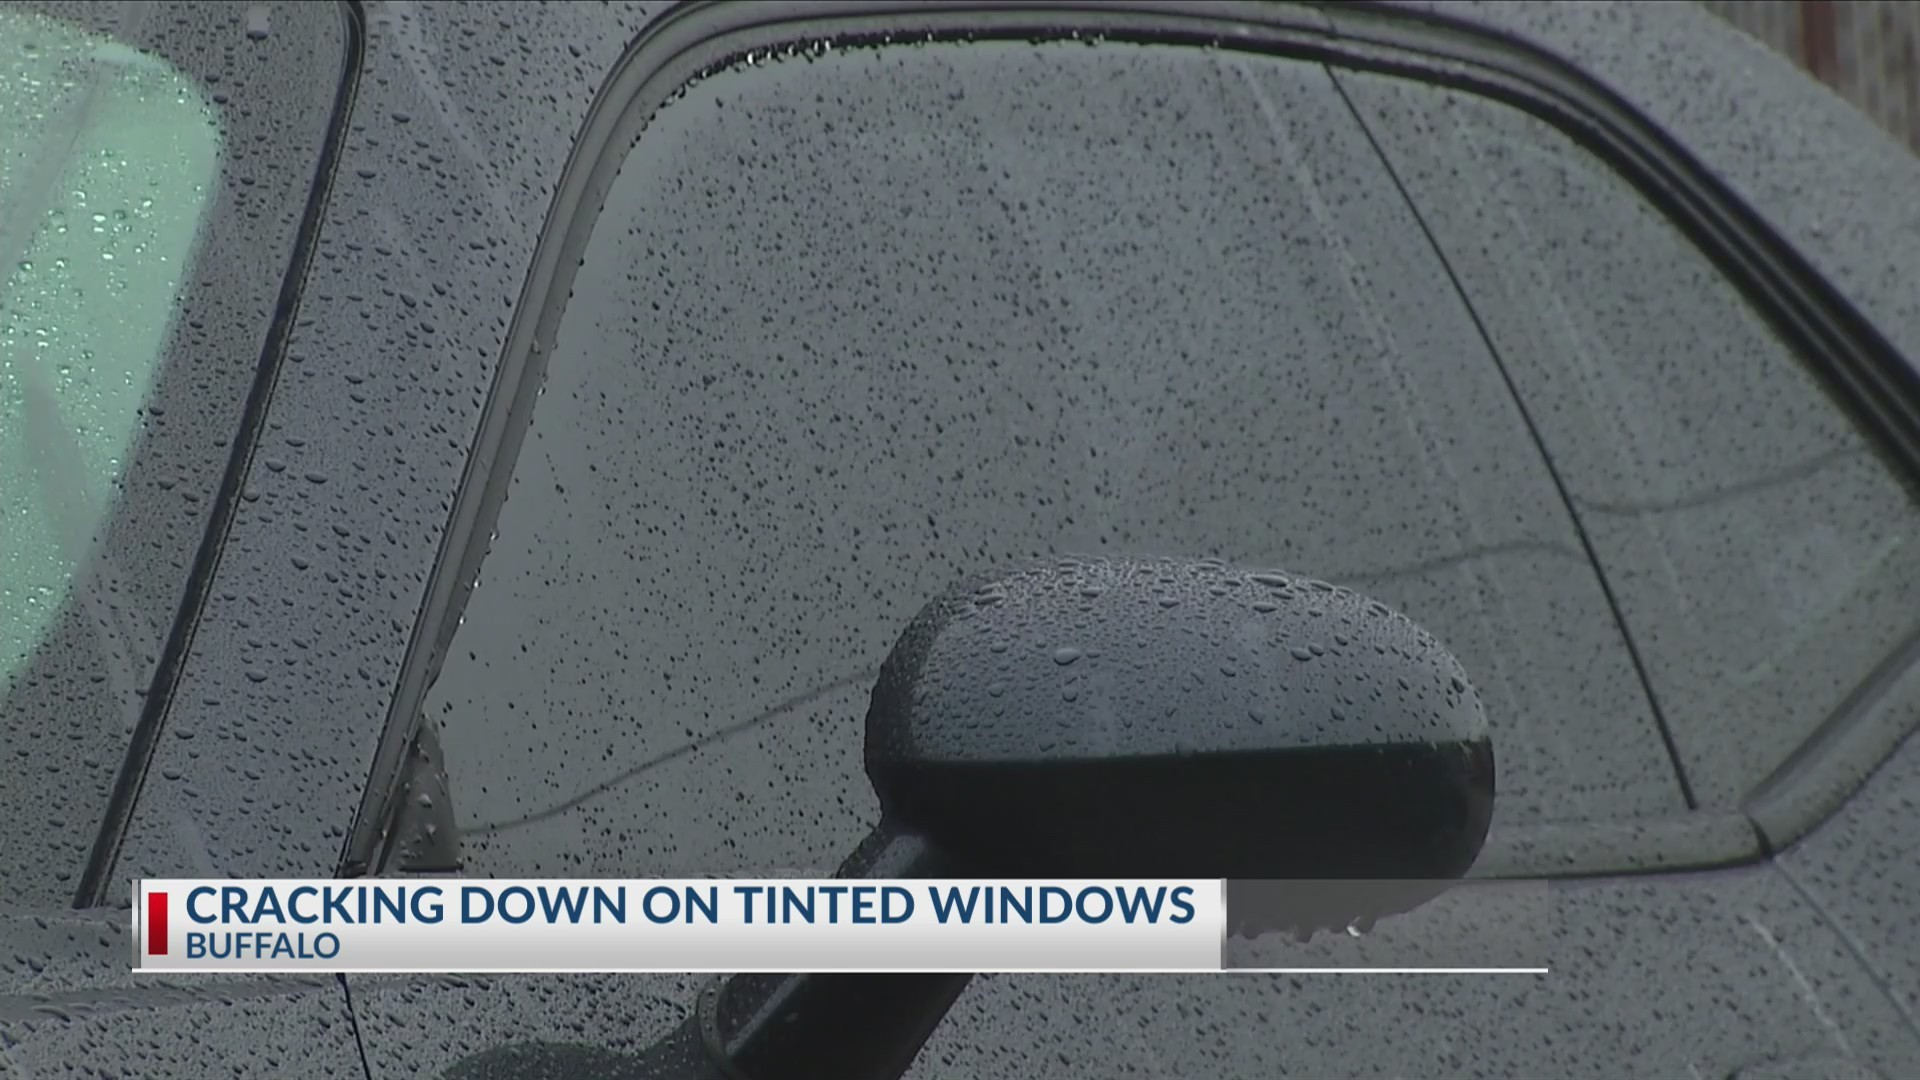 Tinted window tickets most common for Buffalo Police